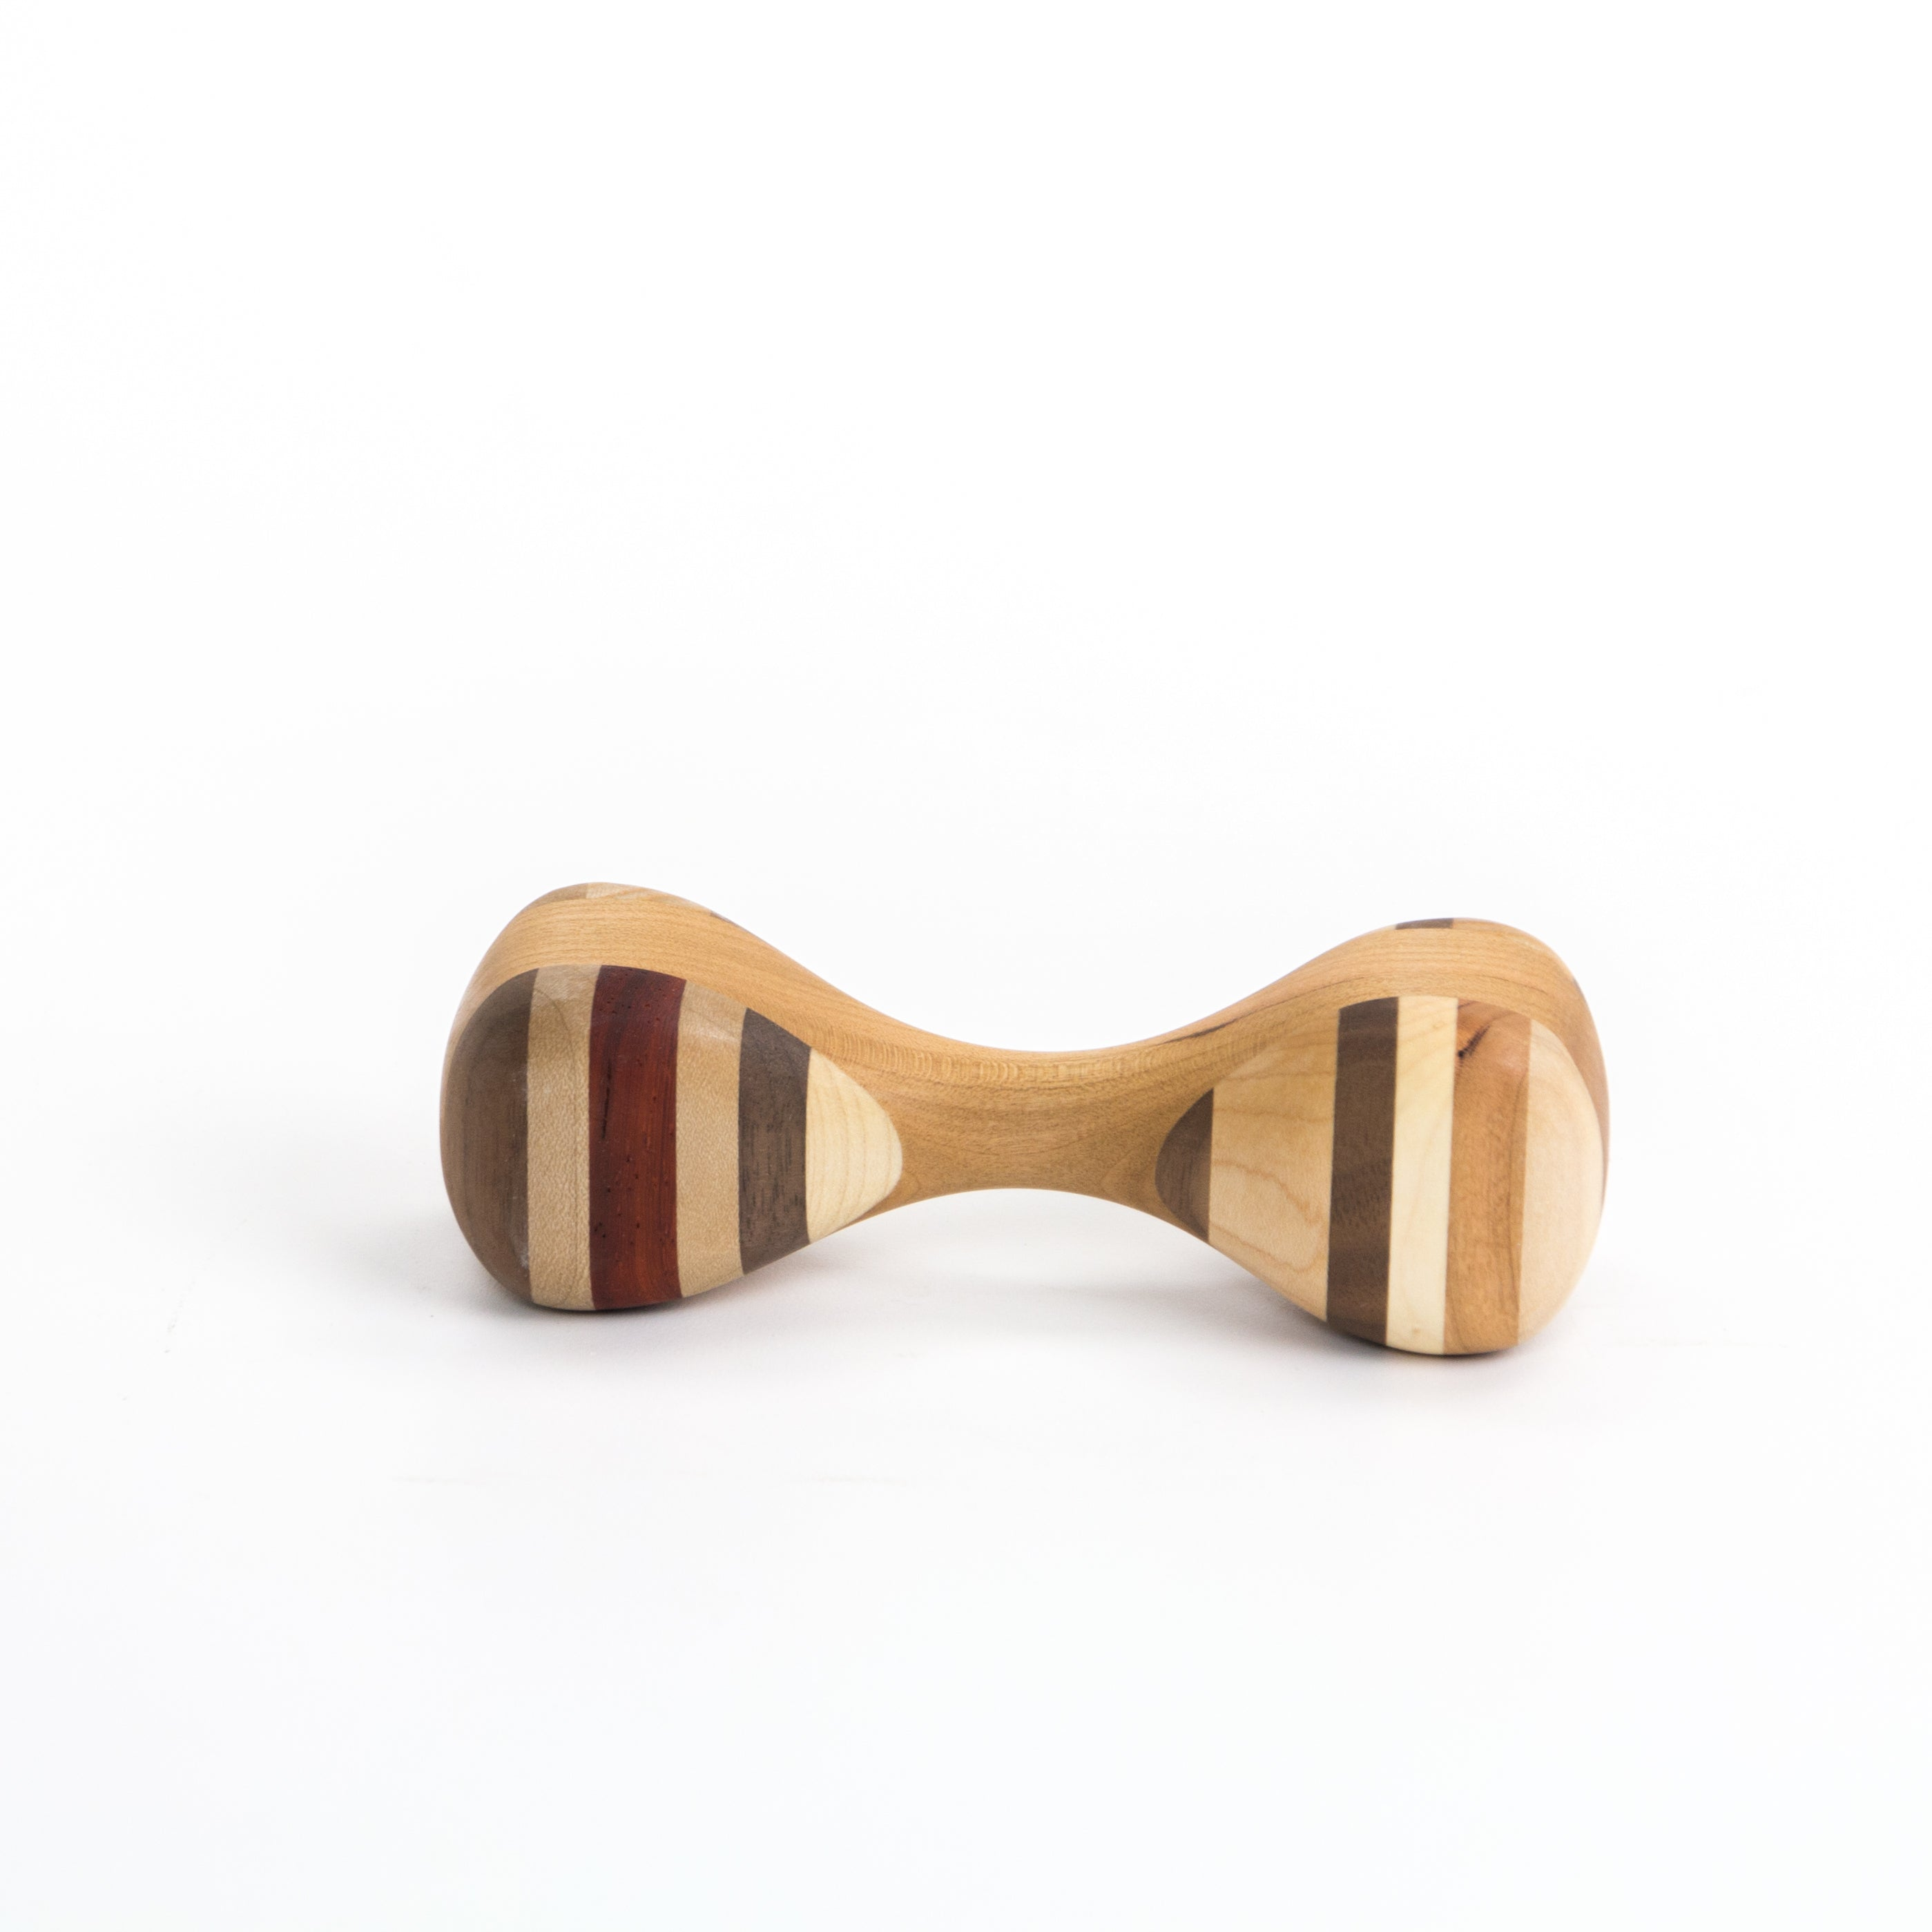 Wooden Baby Rattle - Medium Wood